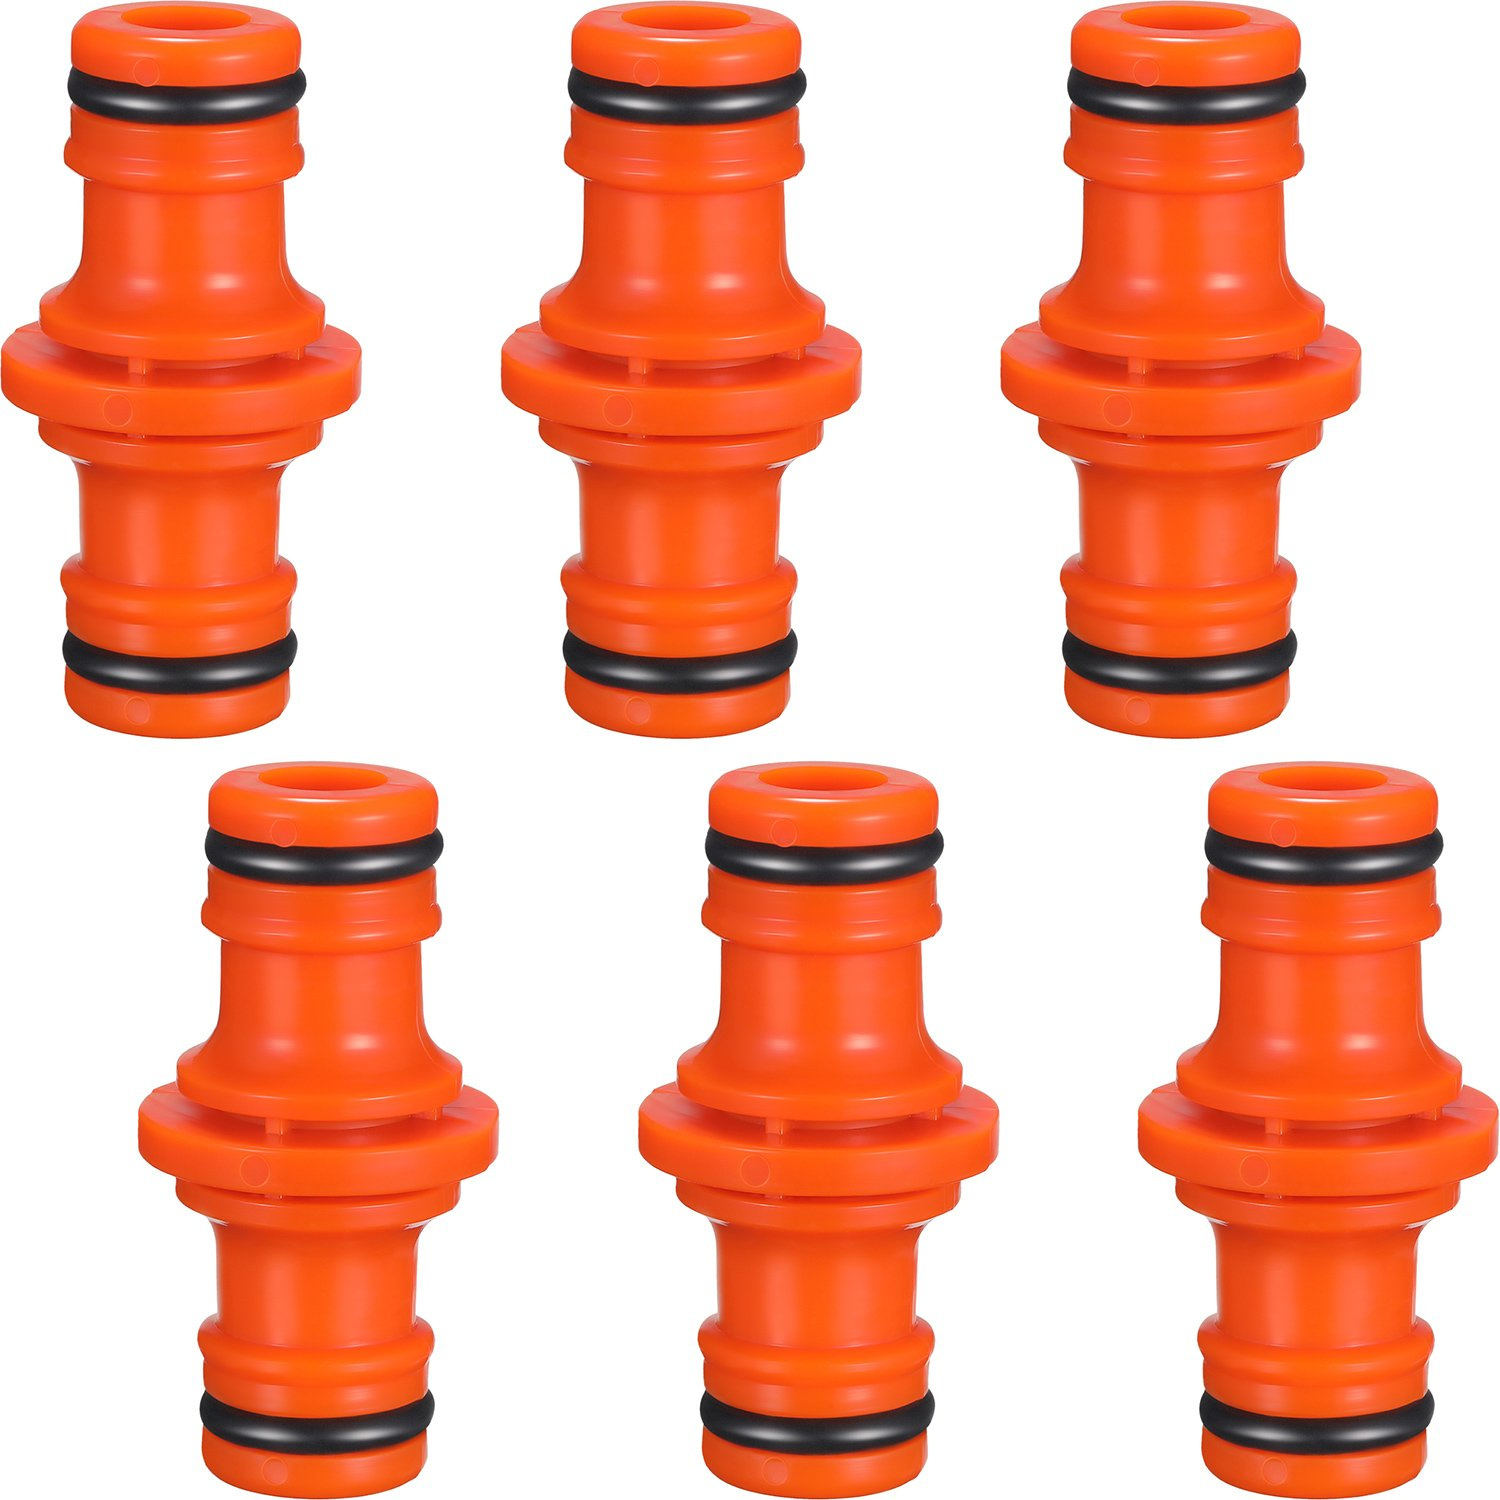 6 Pack Double Male Hose Connectors Extender for Join Garden Hose Pipe Tube (Orange) Hotop